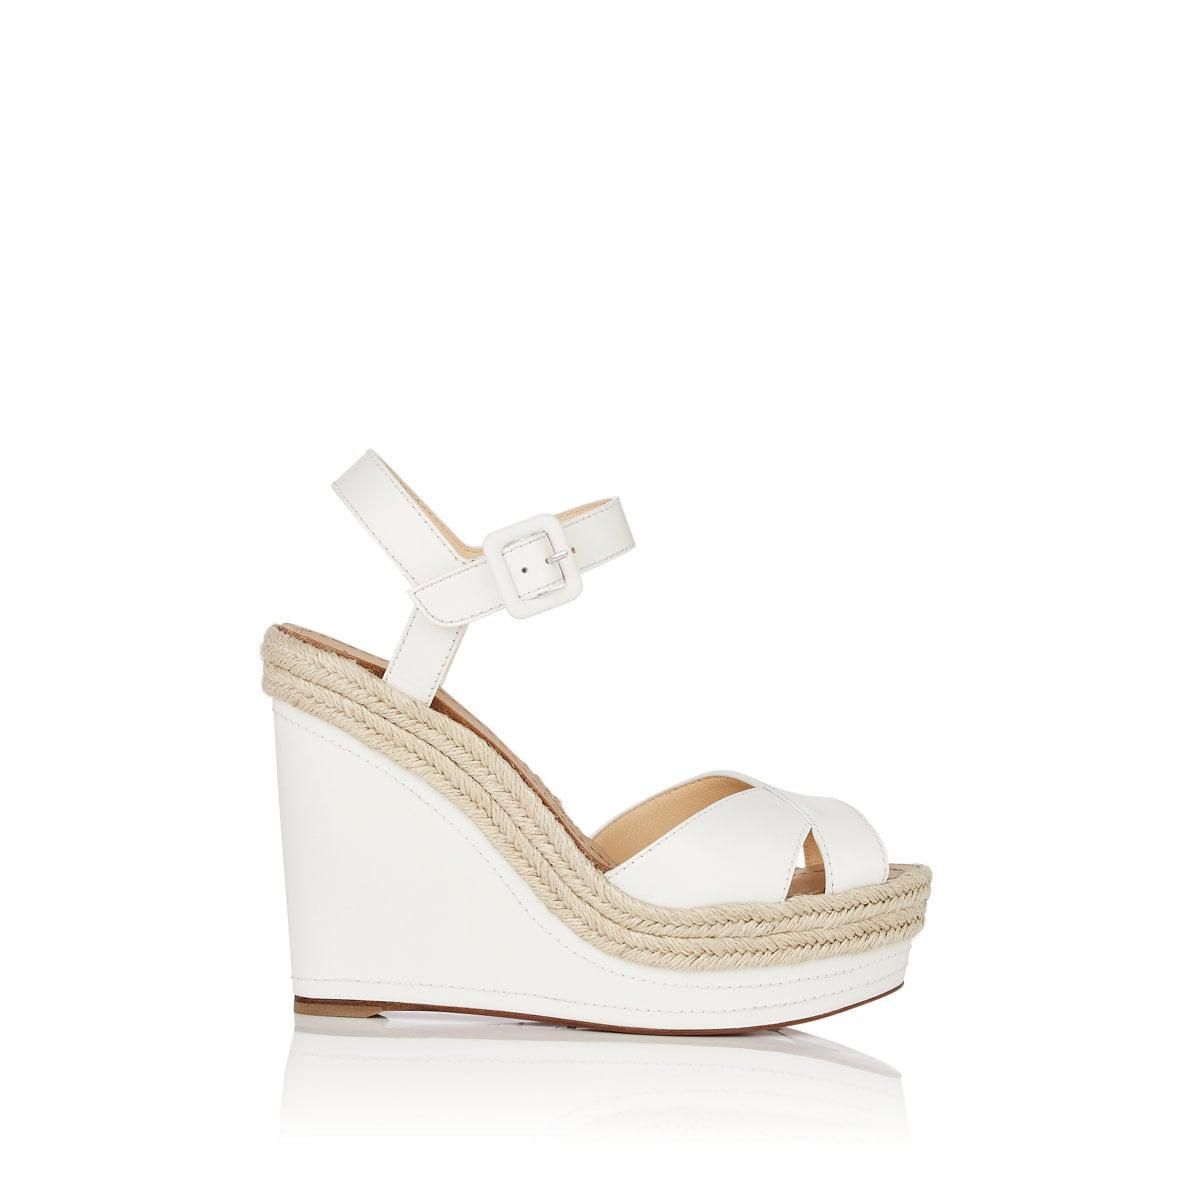 2cd28aaf402 Christian Louboutin. Women s White Almeria Leather Platform-wedge Sandals